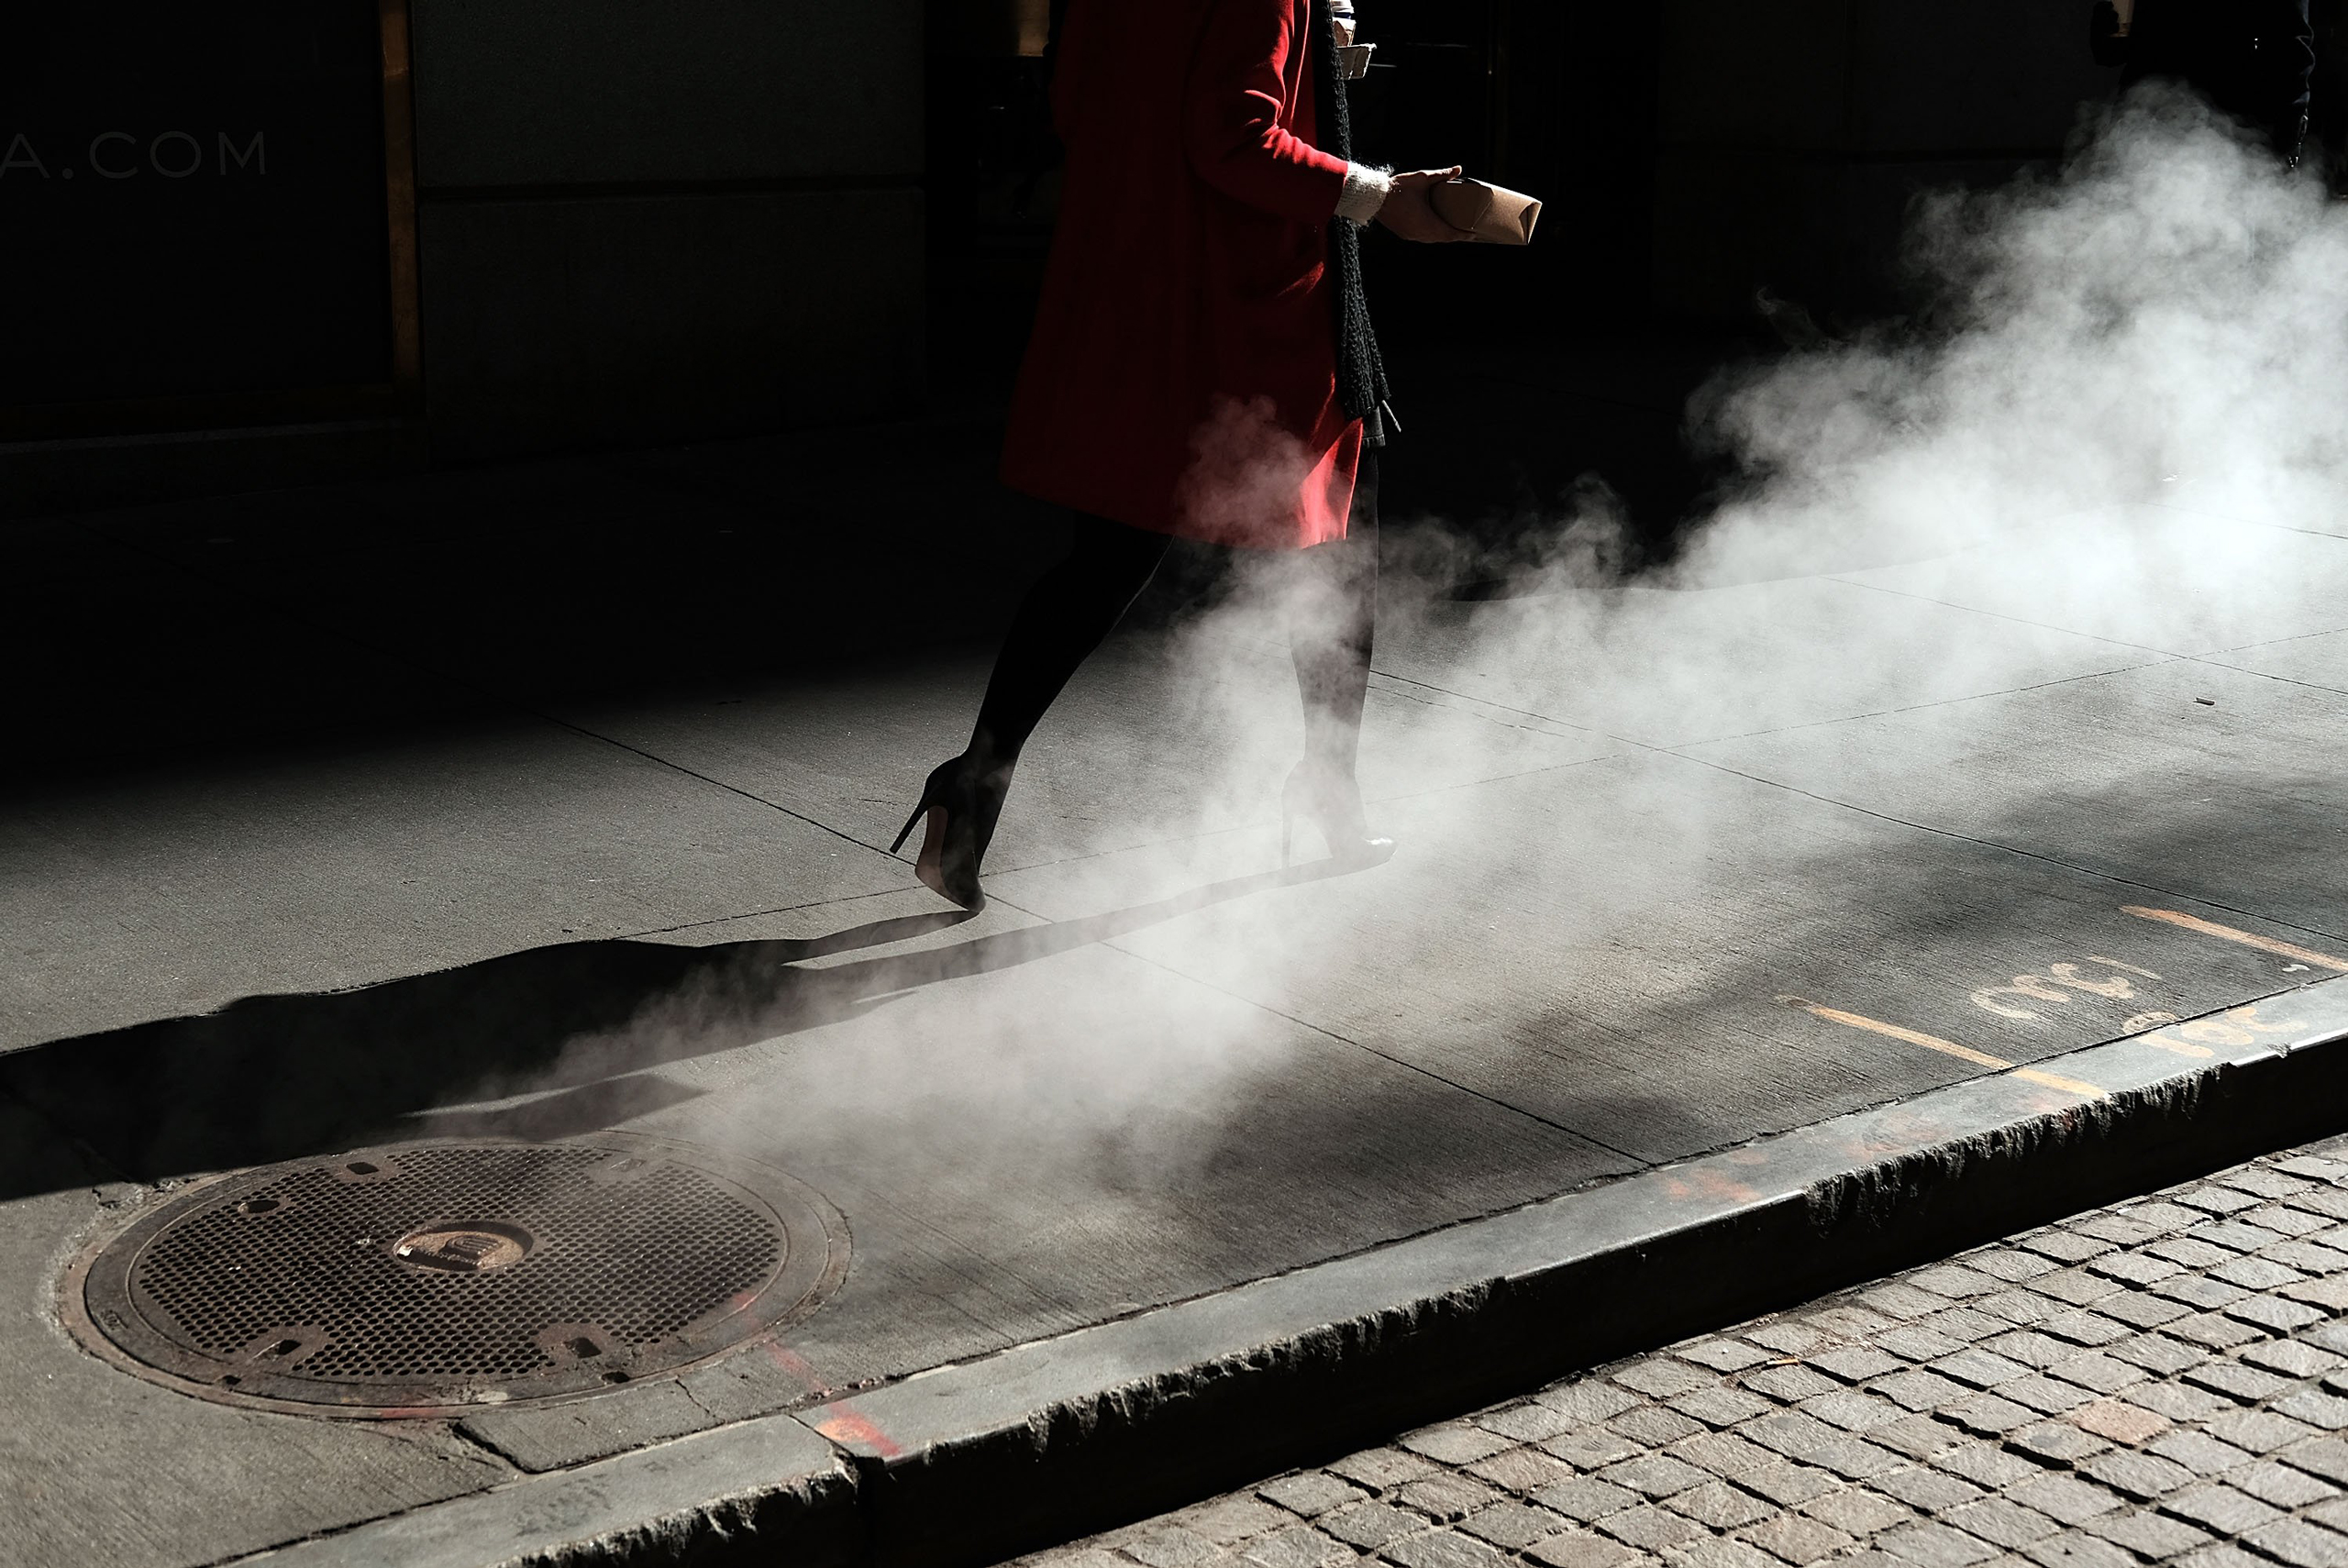 A woman walks by the New York Stock Exchange near Wall Street, in New York City, on March 21, 2016.